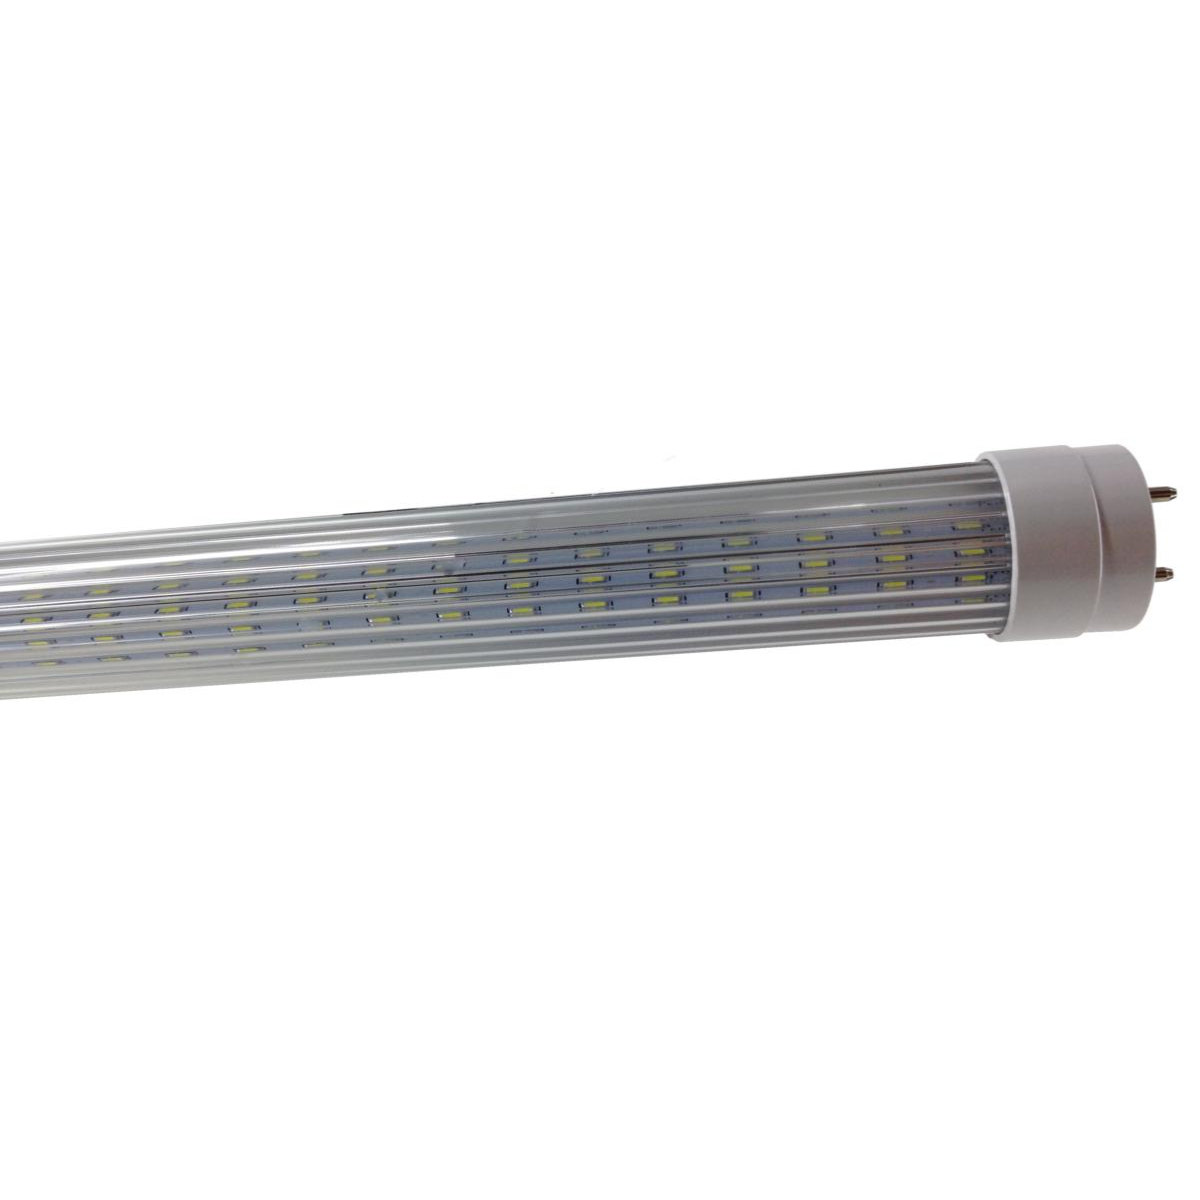 Eclairage Led Tube Tube Néon Led T8 20w 120cm Fabricant D 39éclairage Led De